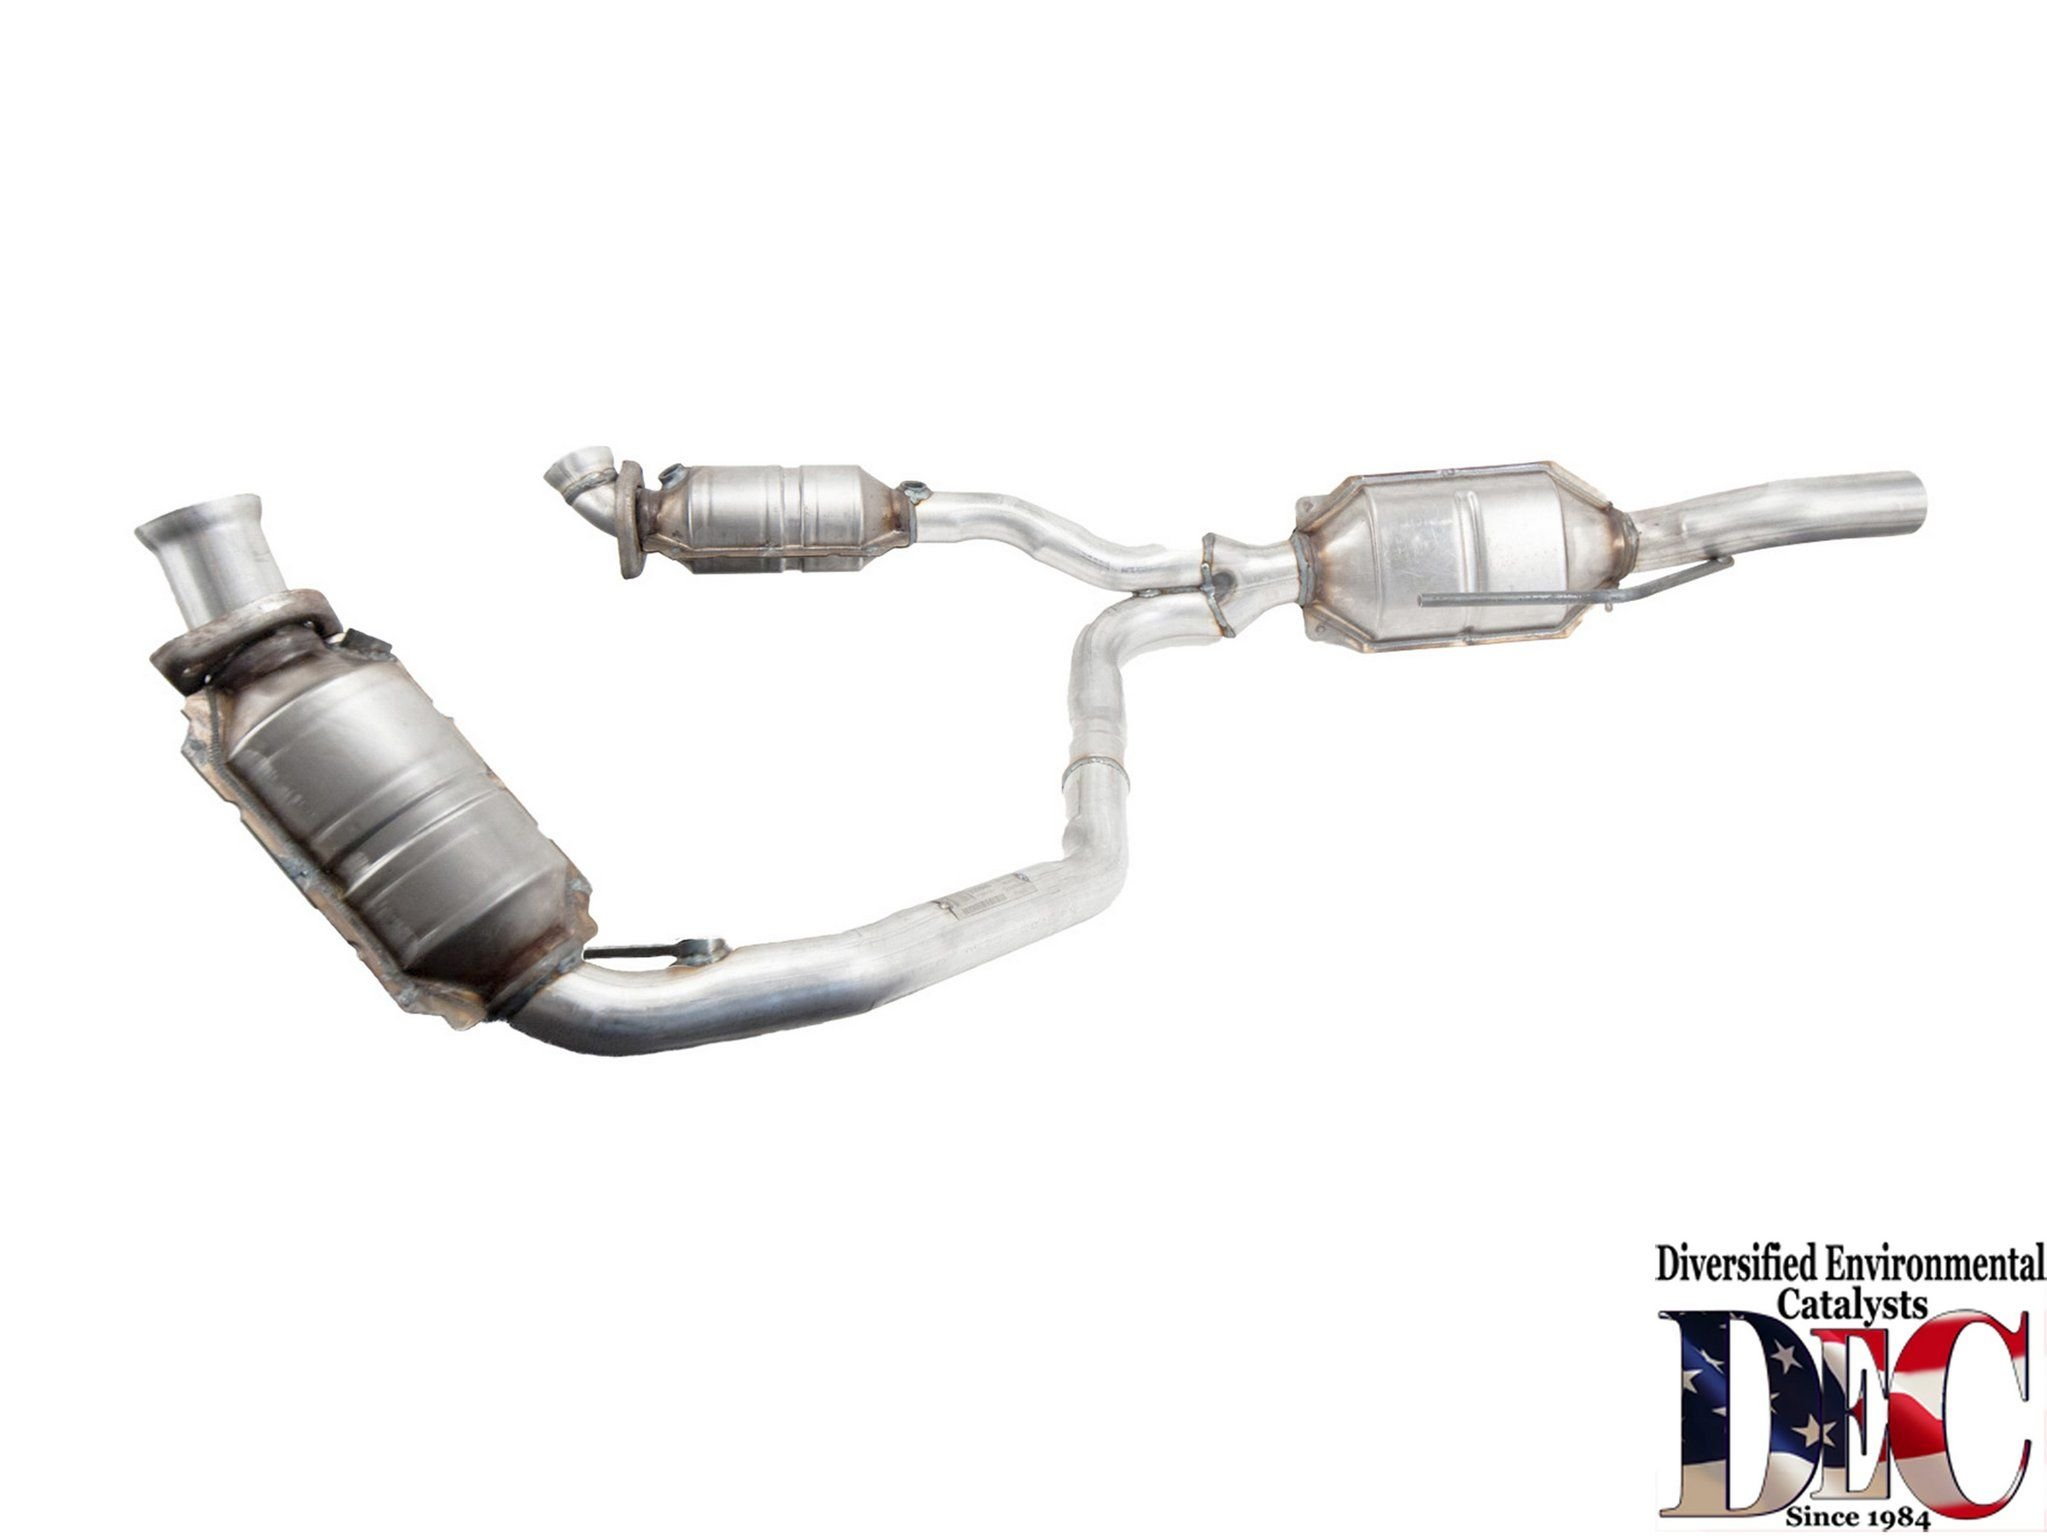 Dodge Ram 1500 Van Catalytic Converter and Pipe Assembly